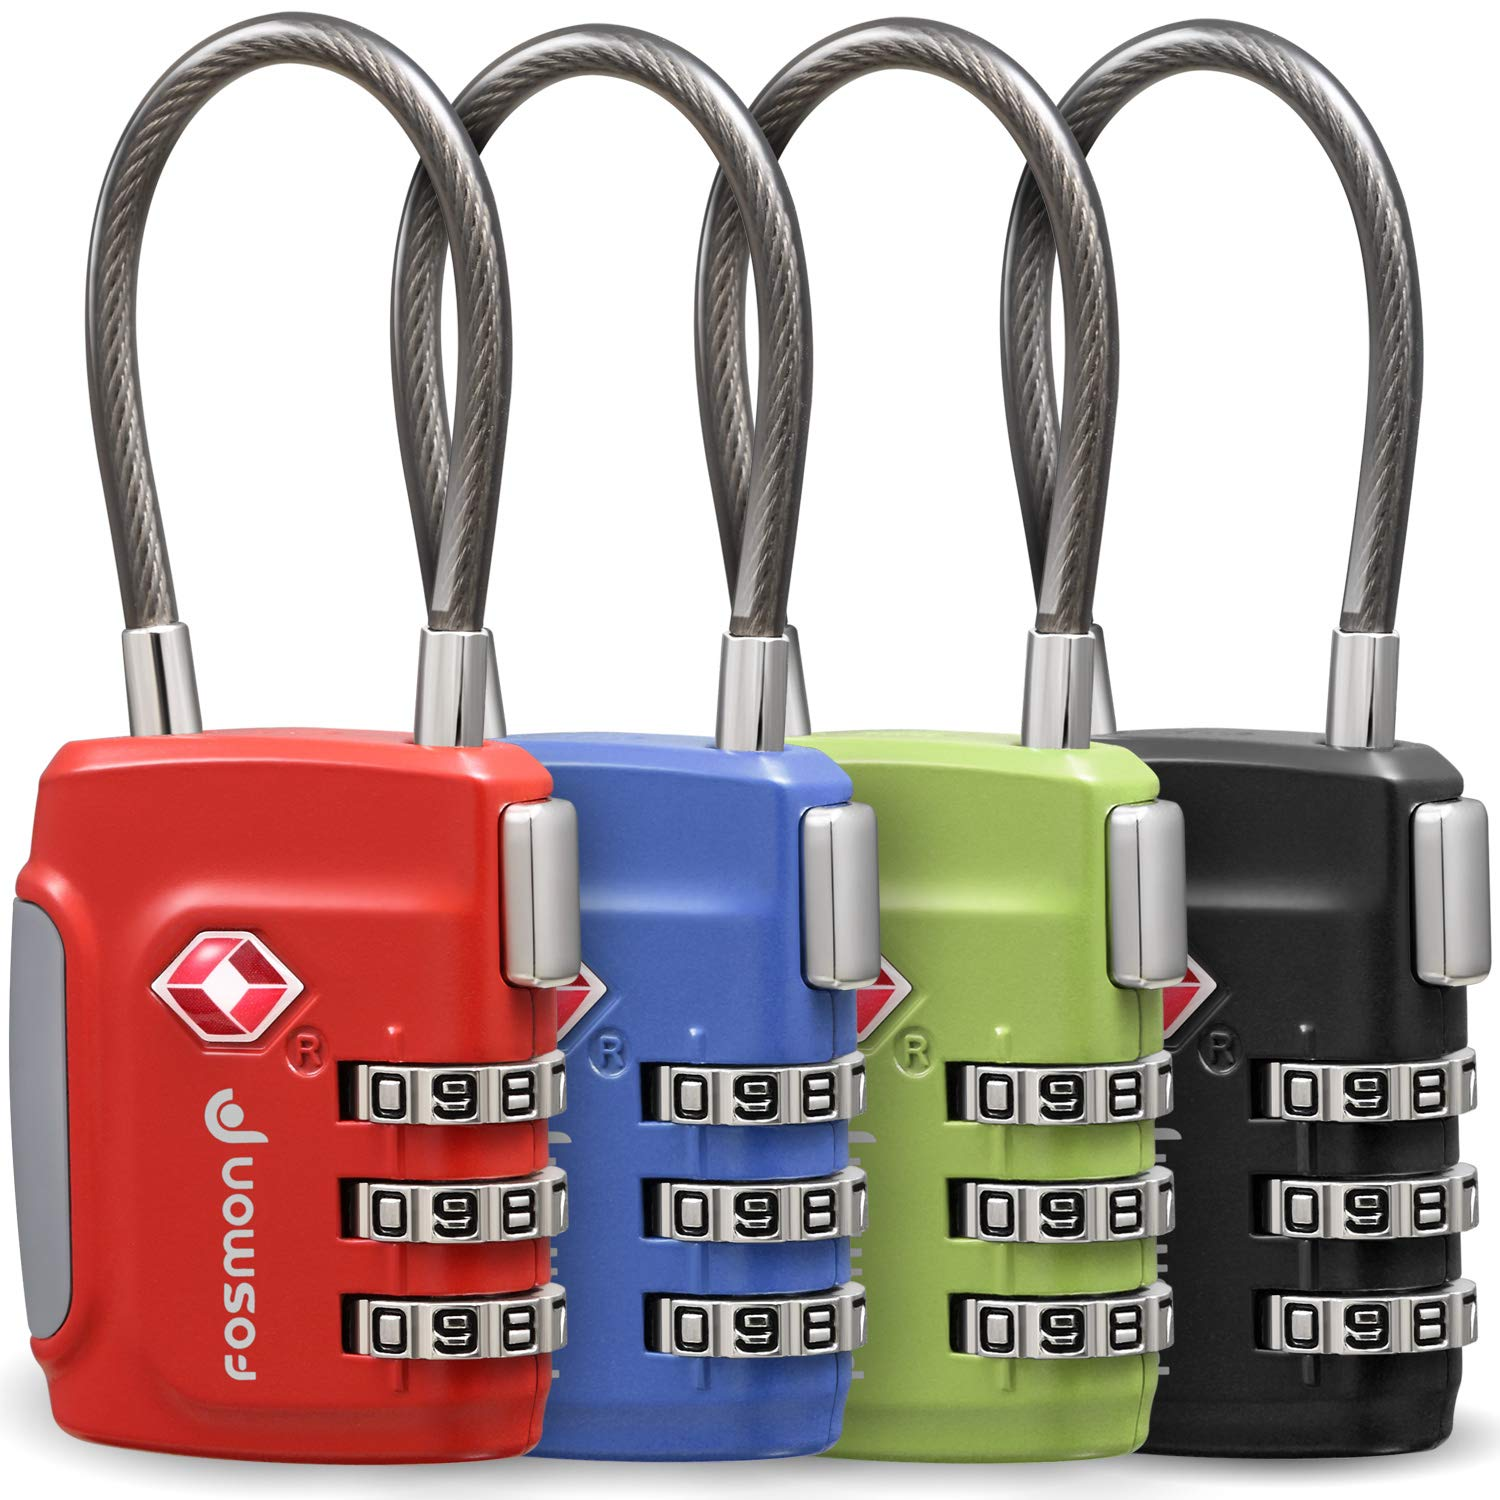 Fosmon TSA Approved Cable Luggage Locks (4 Pack) - Black, Green, Red and Blue by Fosmon